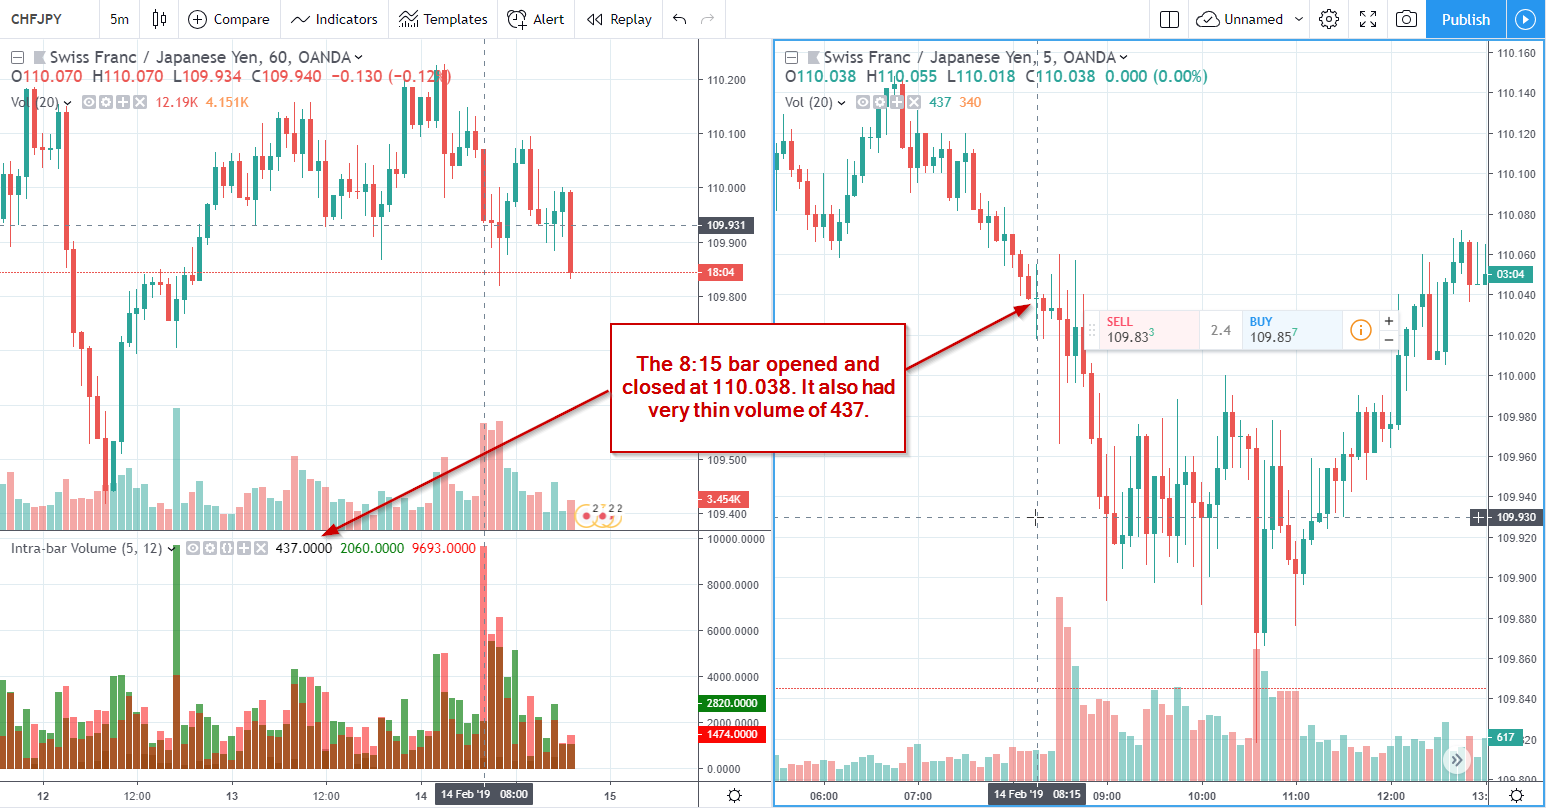 Tradingview - Volume Profile With Lower Time-frame Data - Backtest